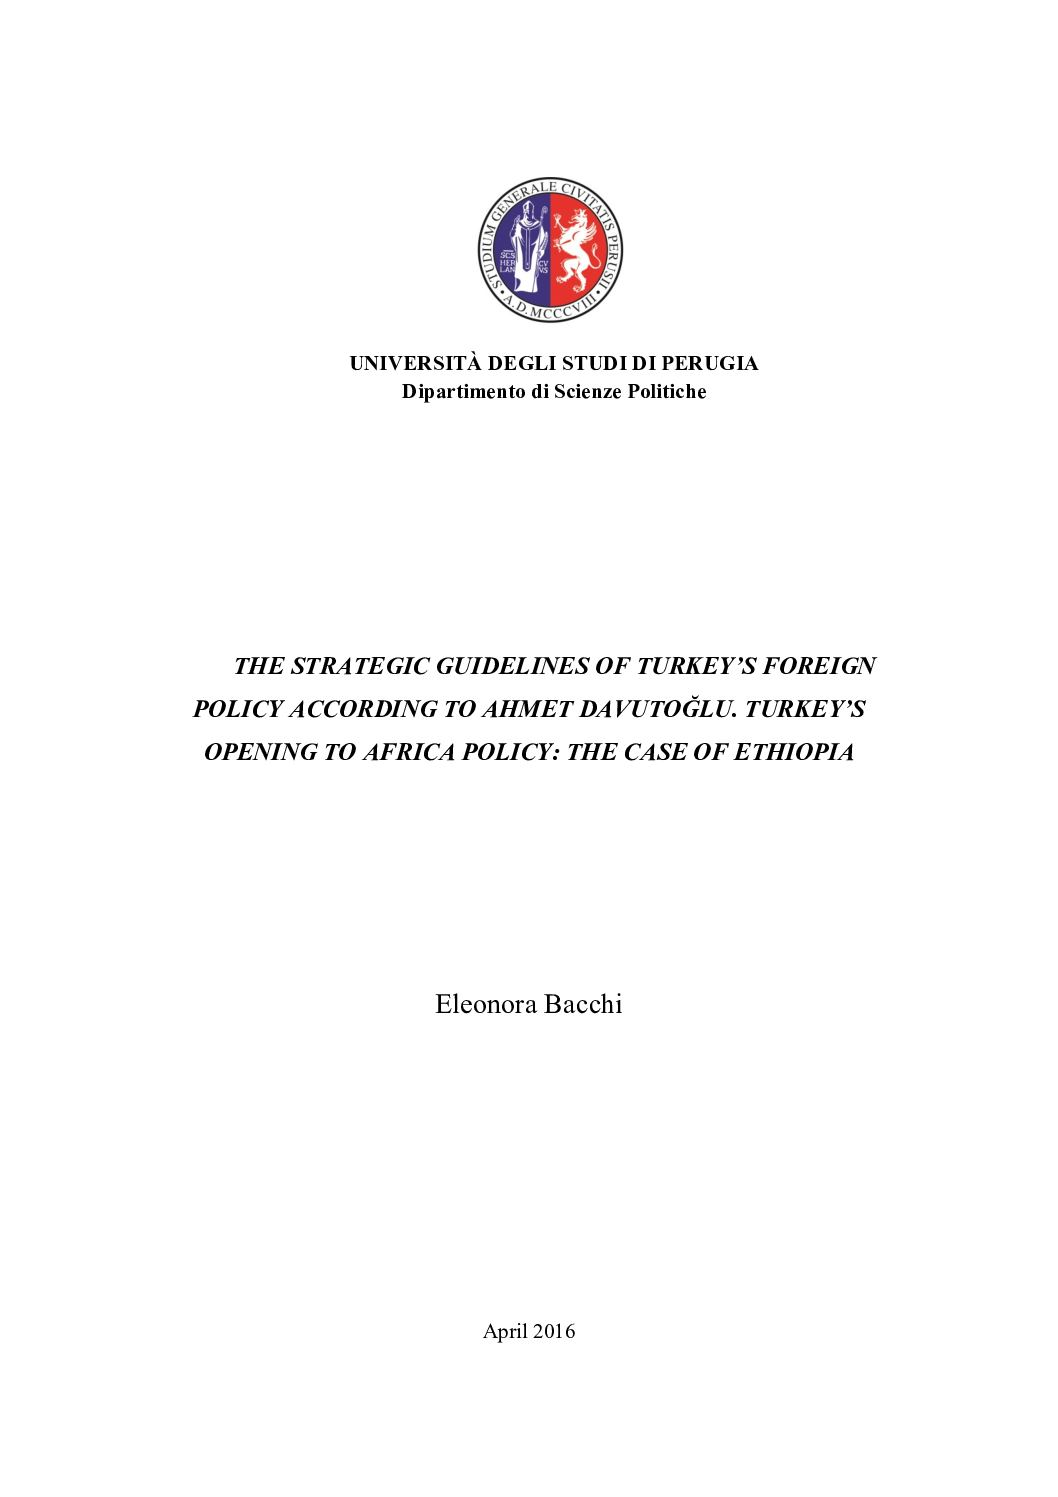 Calaméo - The strategic guidelines of Turkey's foreign